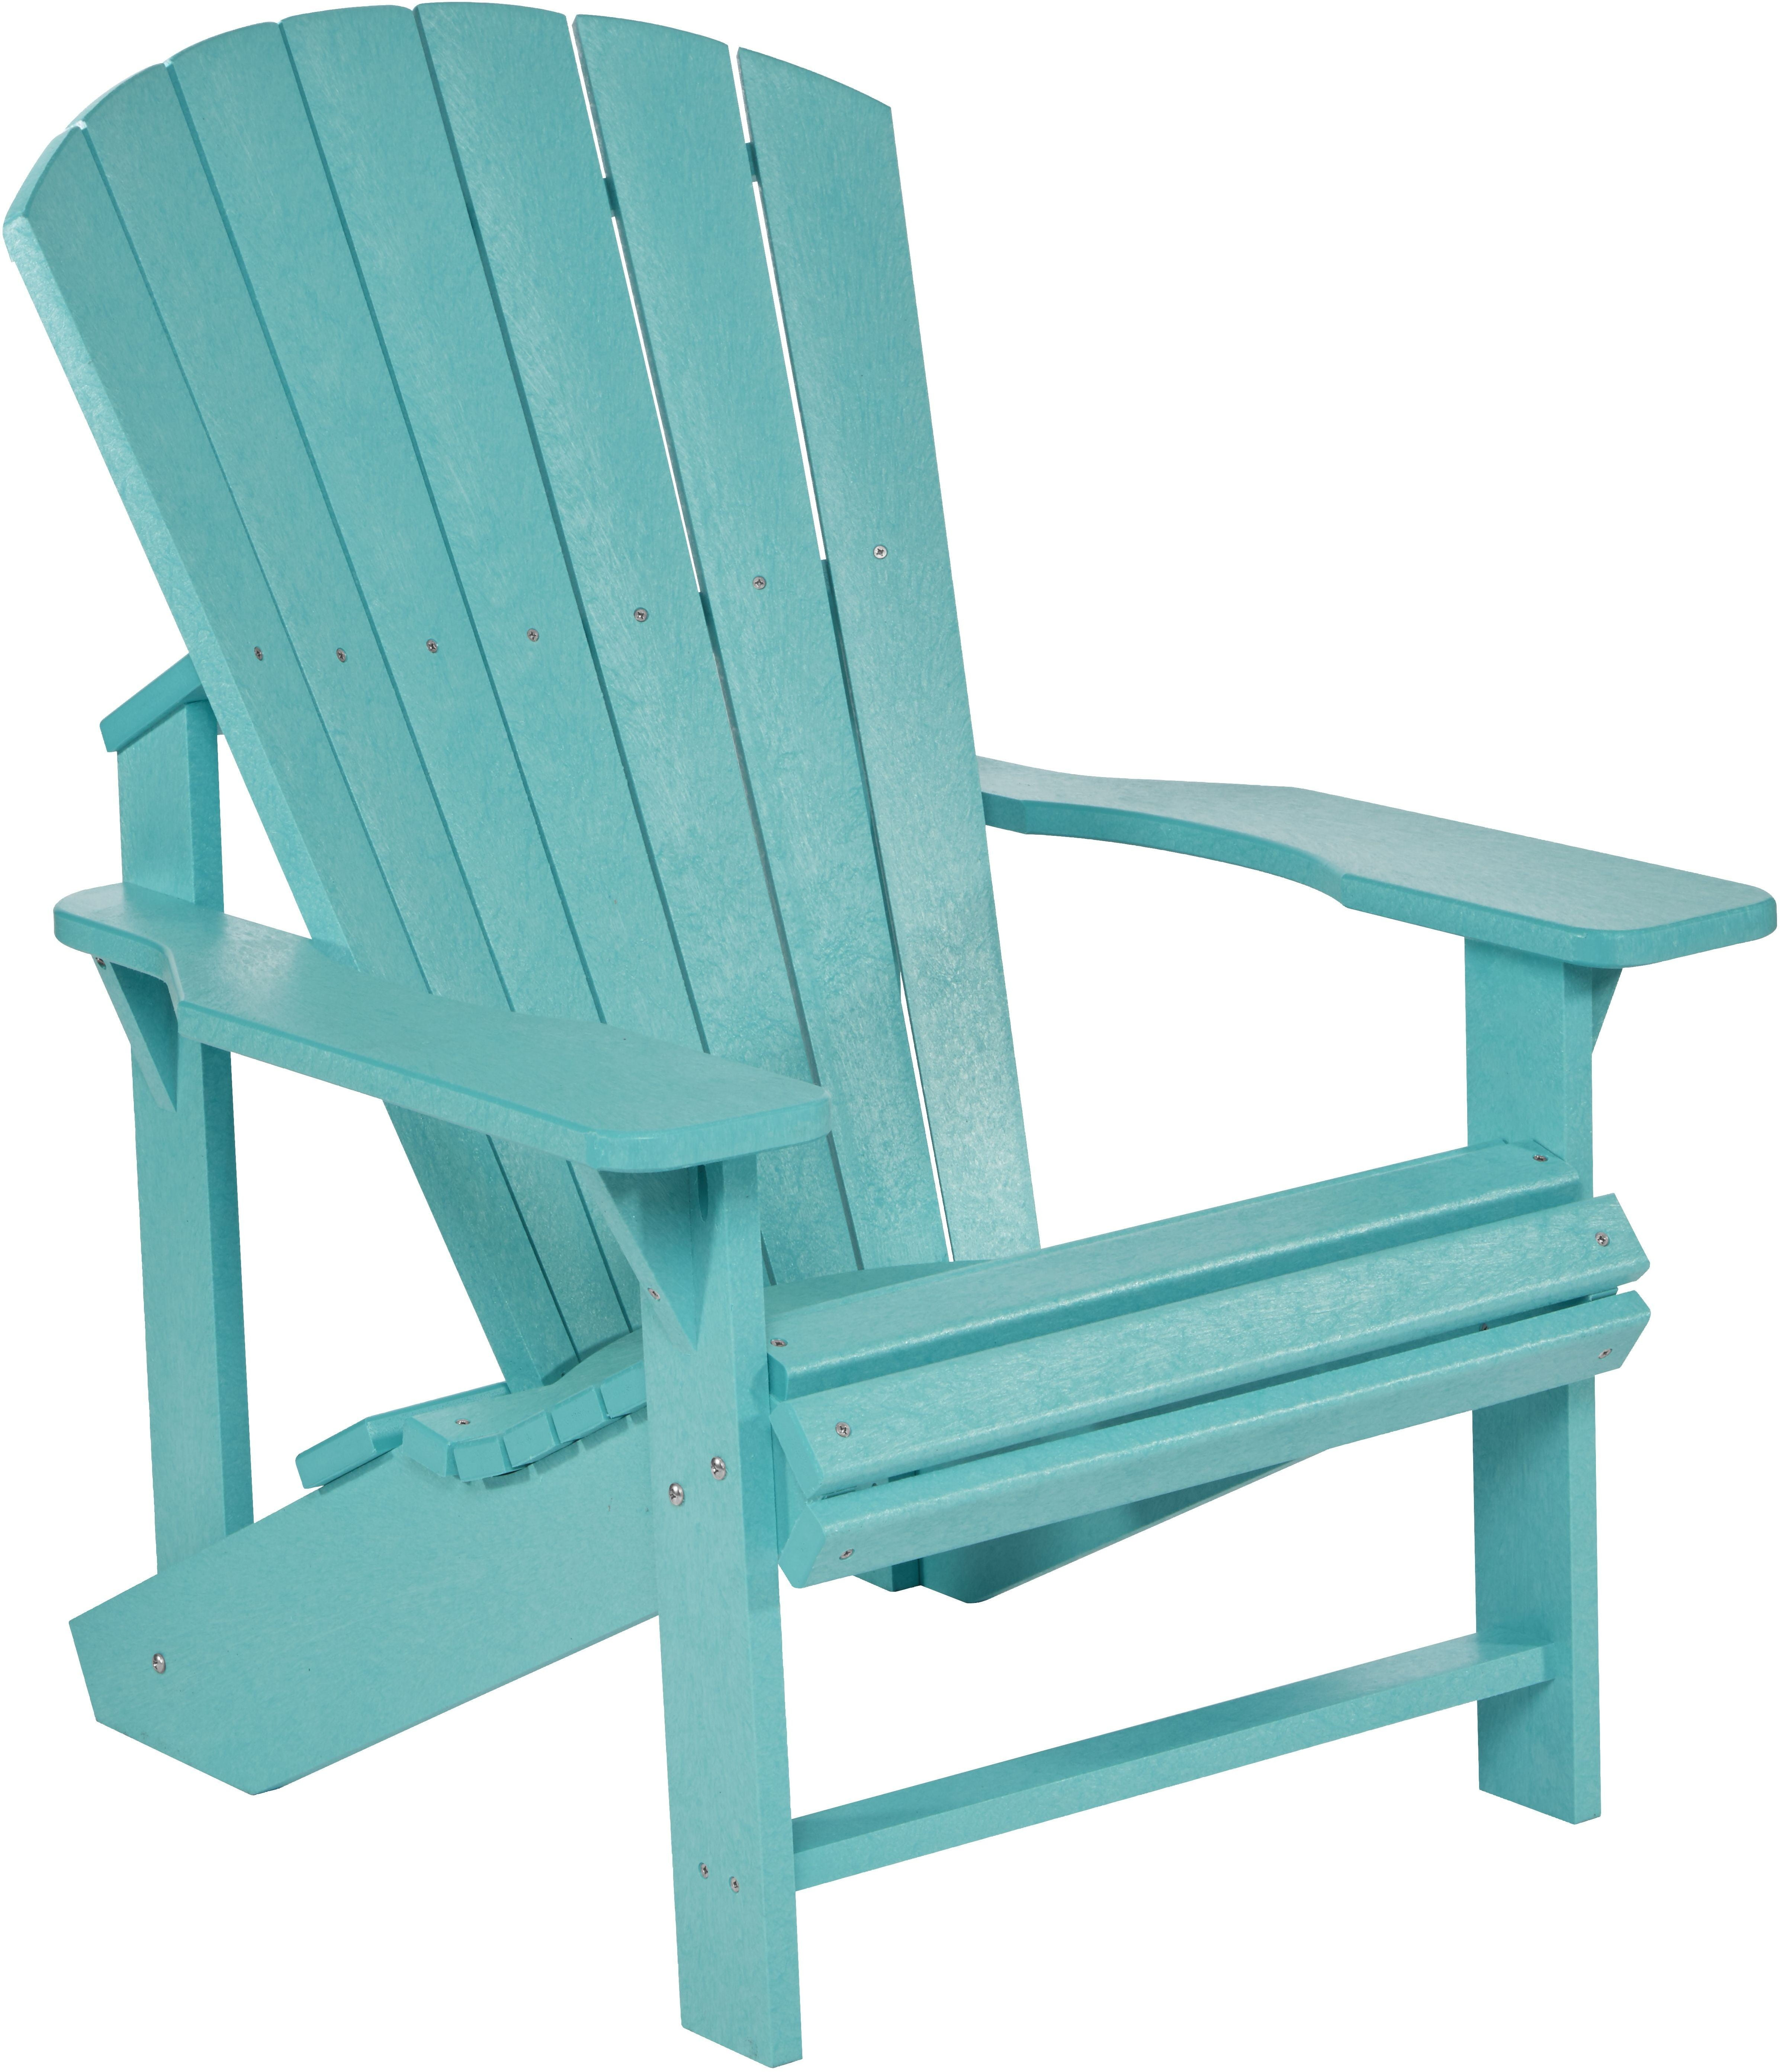 Generation Turquoise Adirondack Chair From CR Plastic | Coleman Furniture